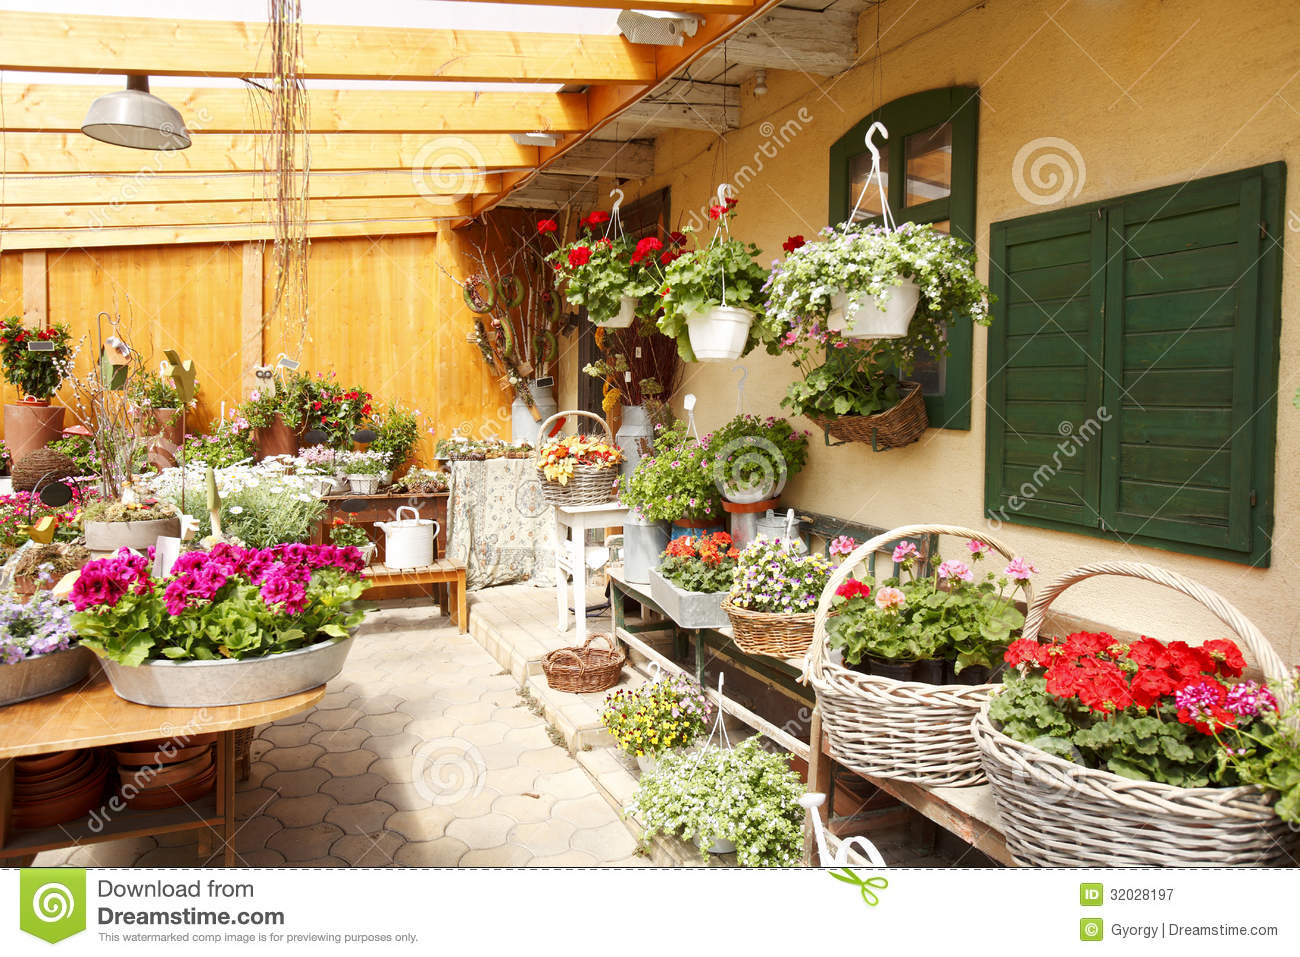 business plan for small flower shop